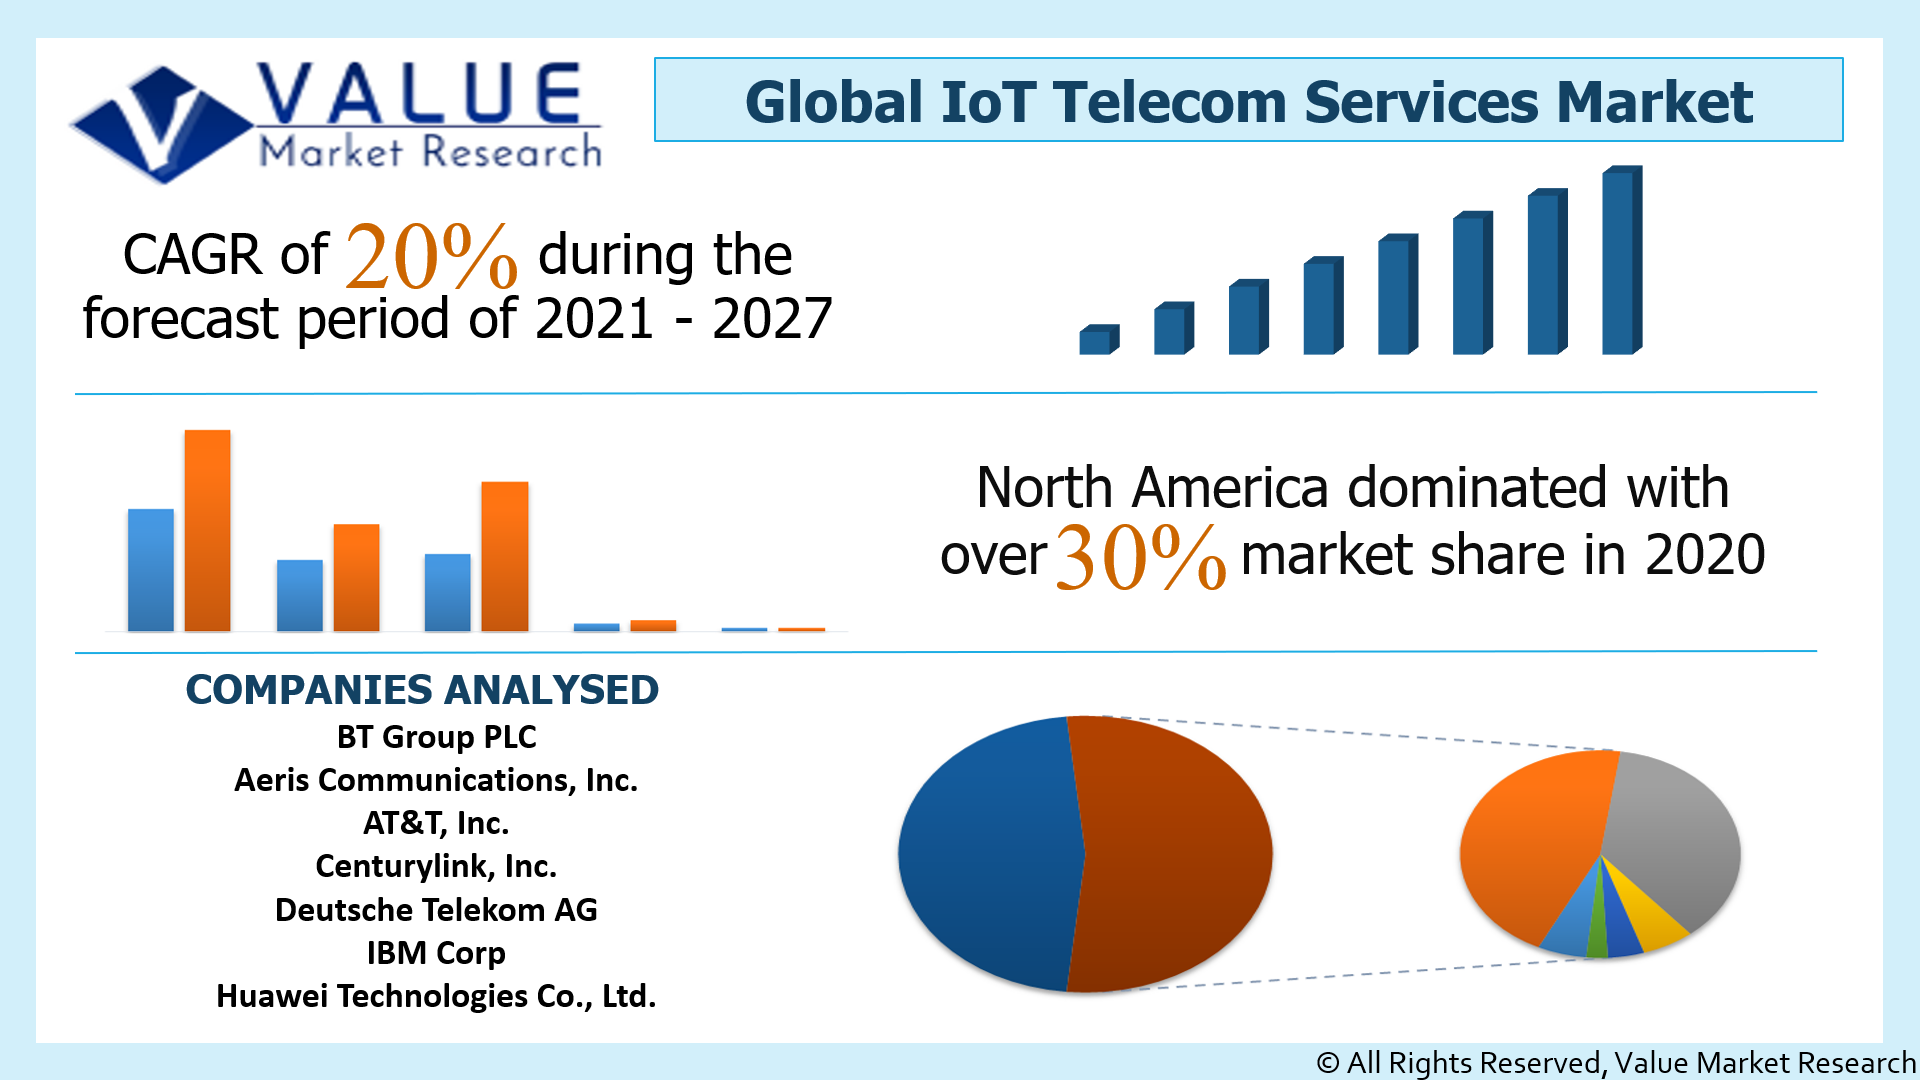 Global IoT Telecom Services Market Share